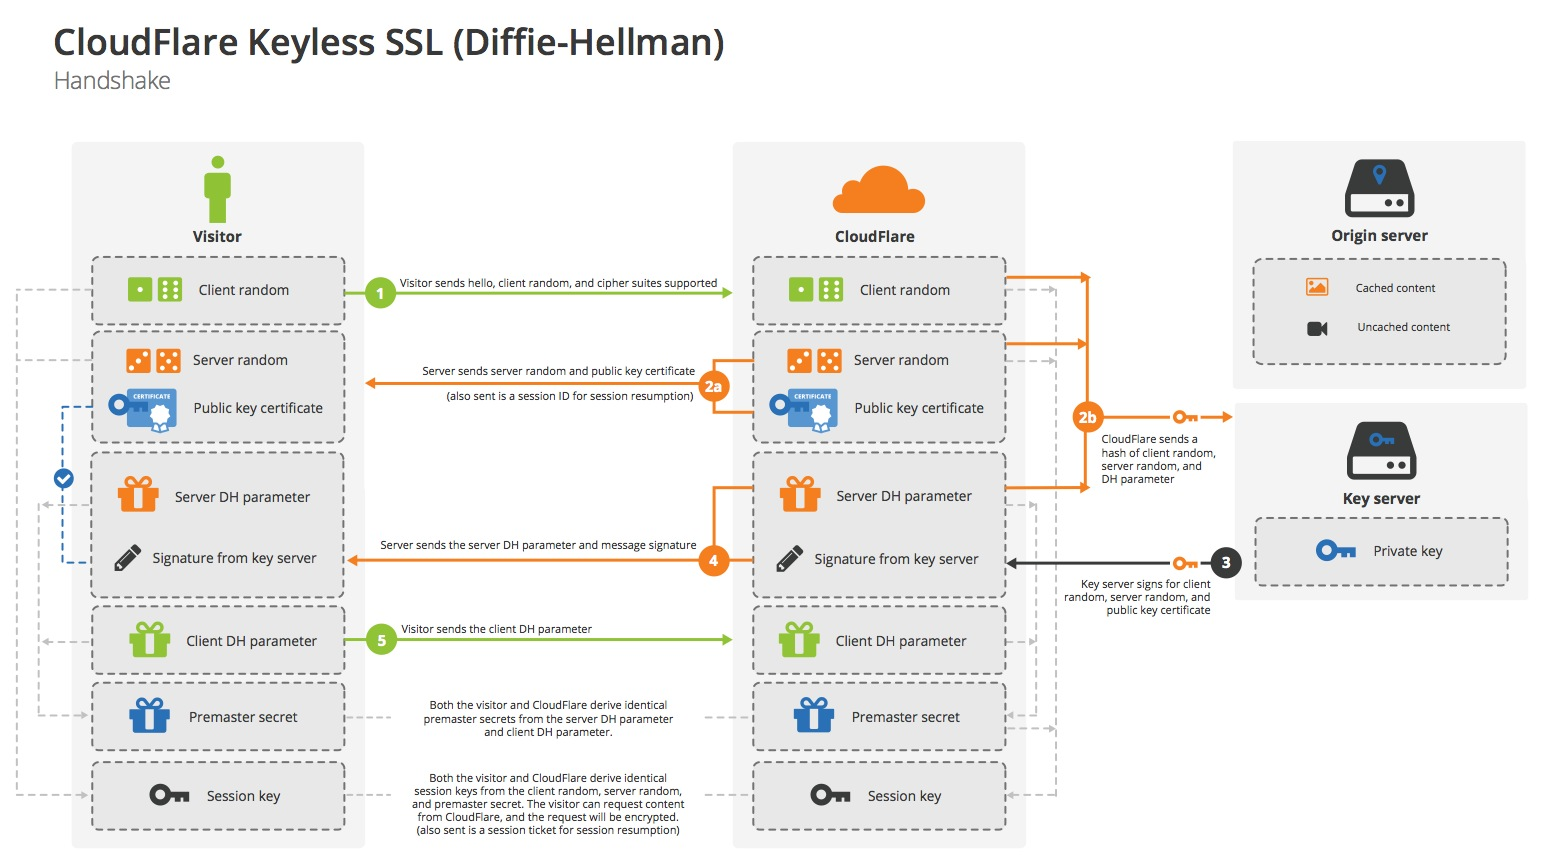 CloudFlare Keyless SSL (DH)